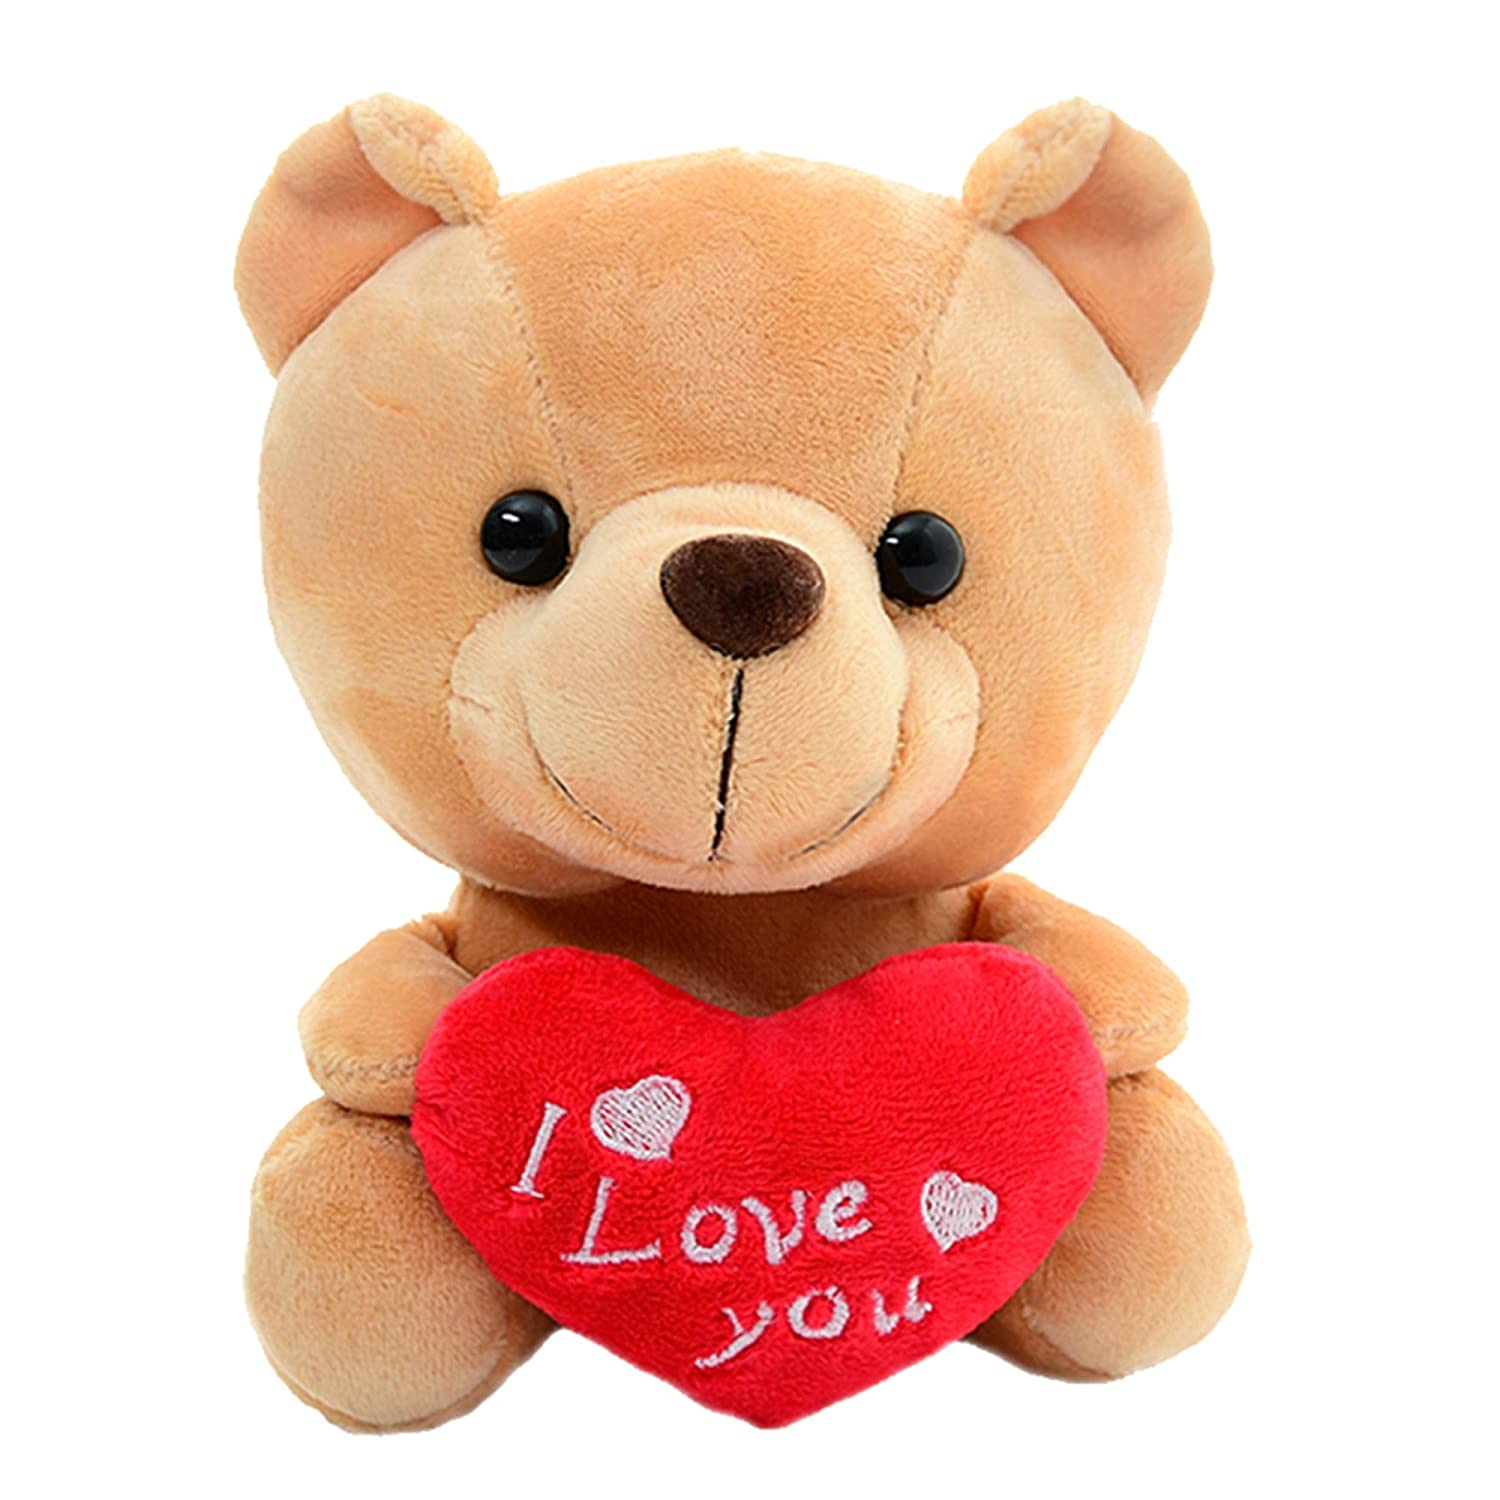 "Love Quotes With Teddy Bear Images: Love Plush Teddy Bear With Heart ""I Love You'' Valentines"